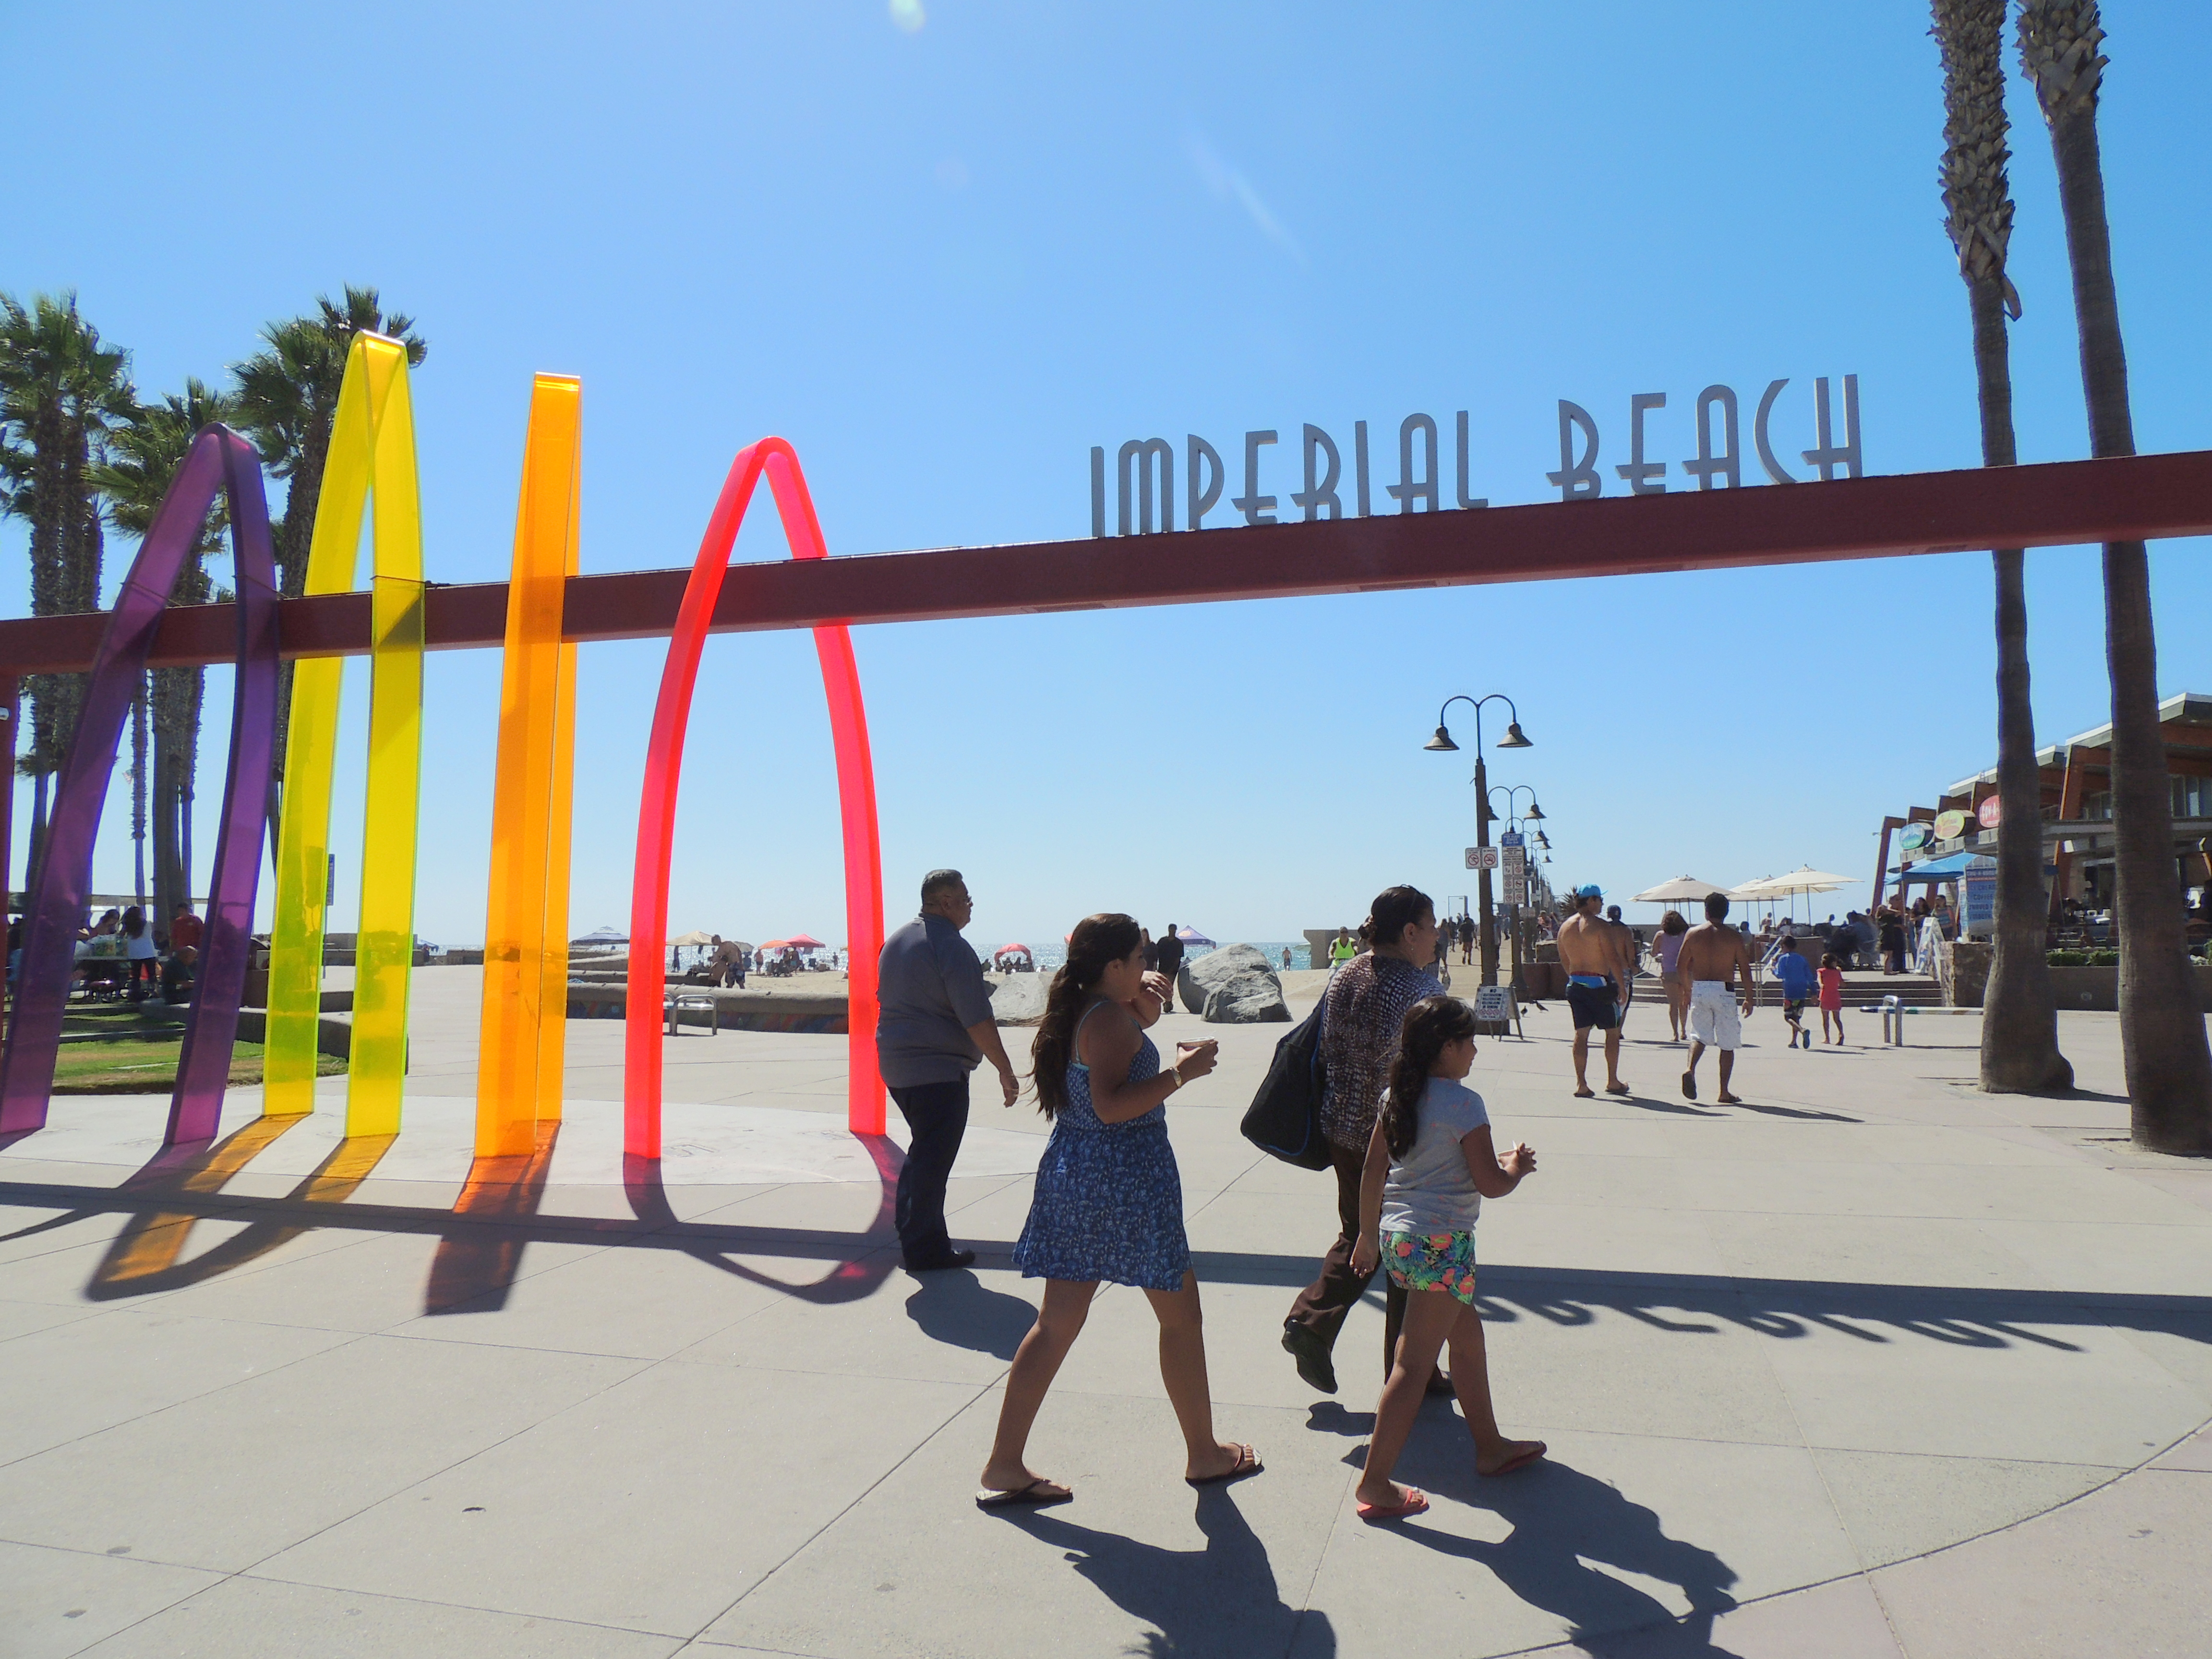 At the foot of Imperial Beach pier on the last stretch of United States beach before Mexico